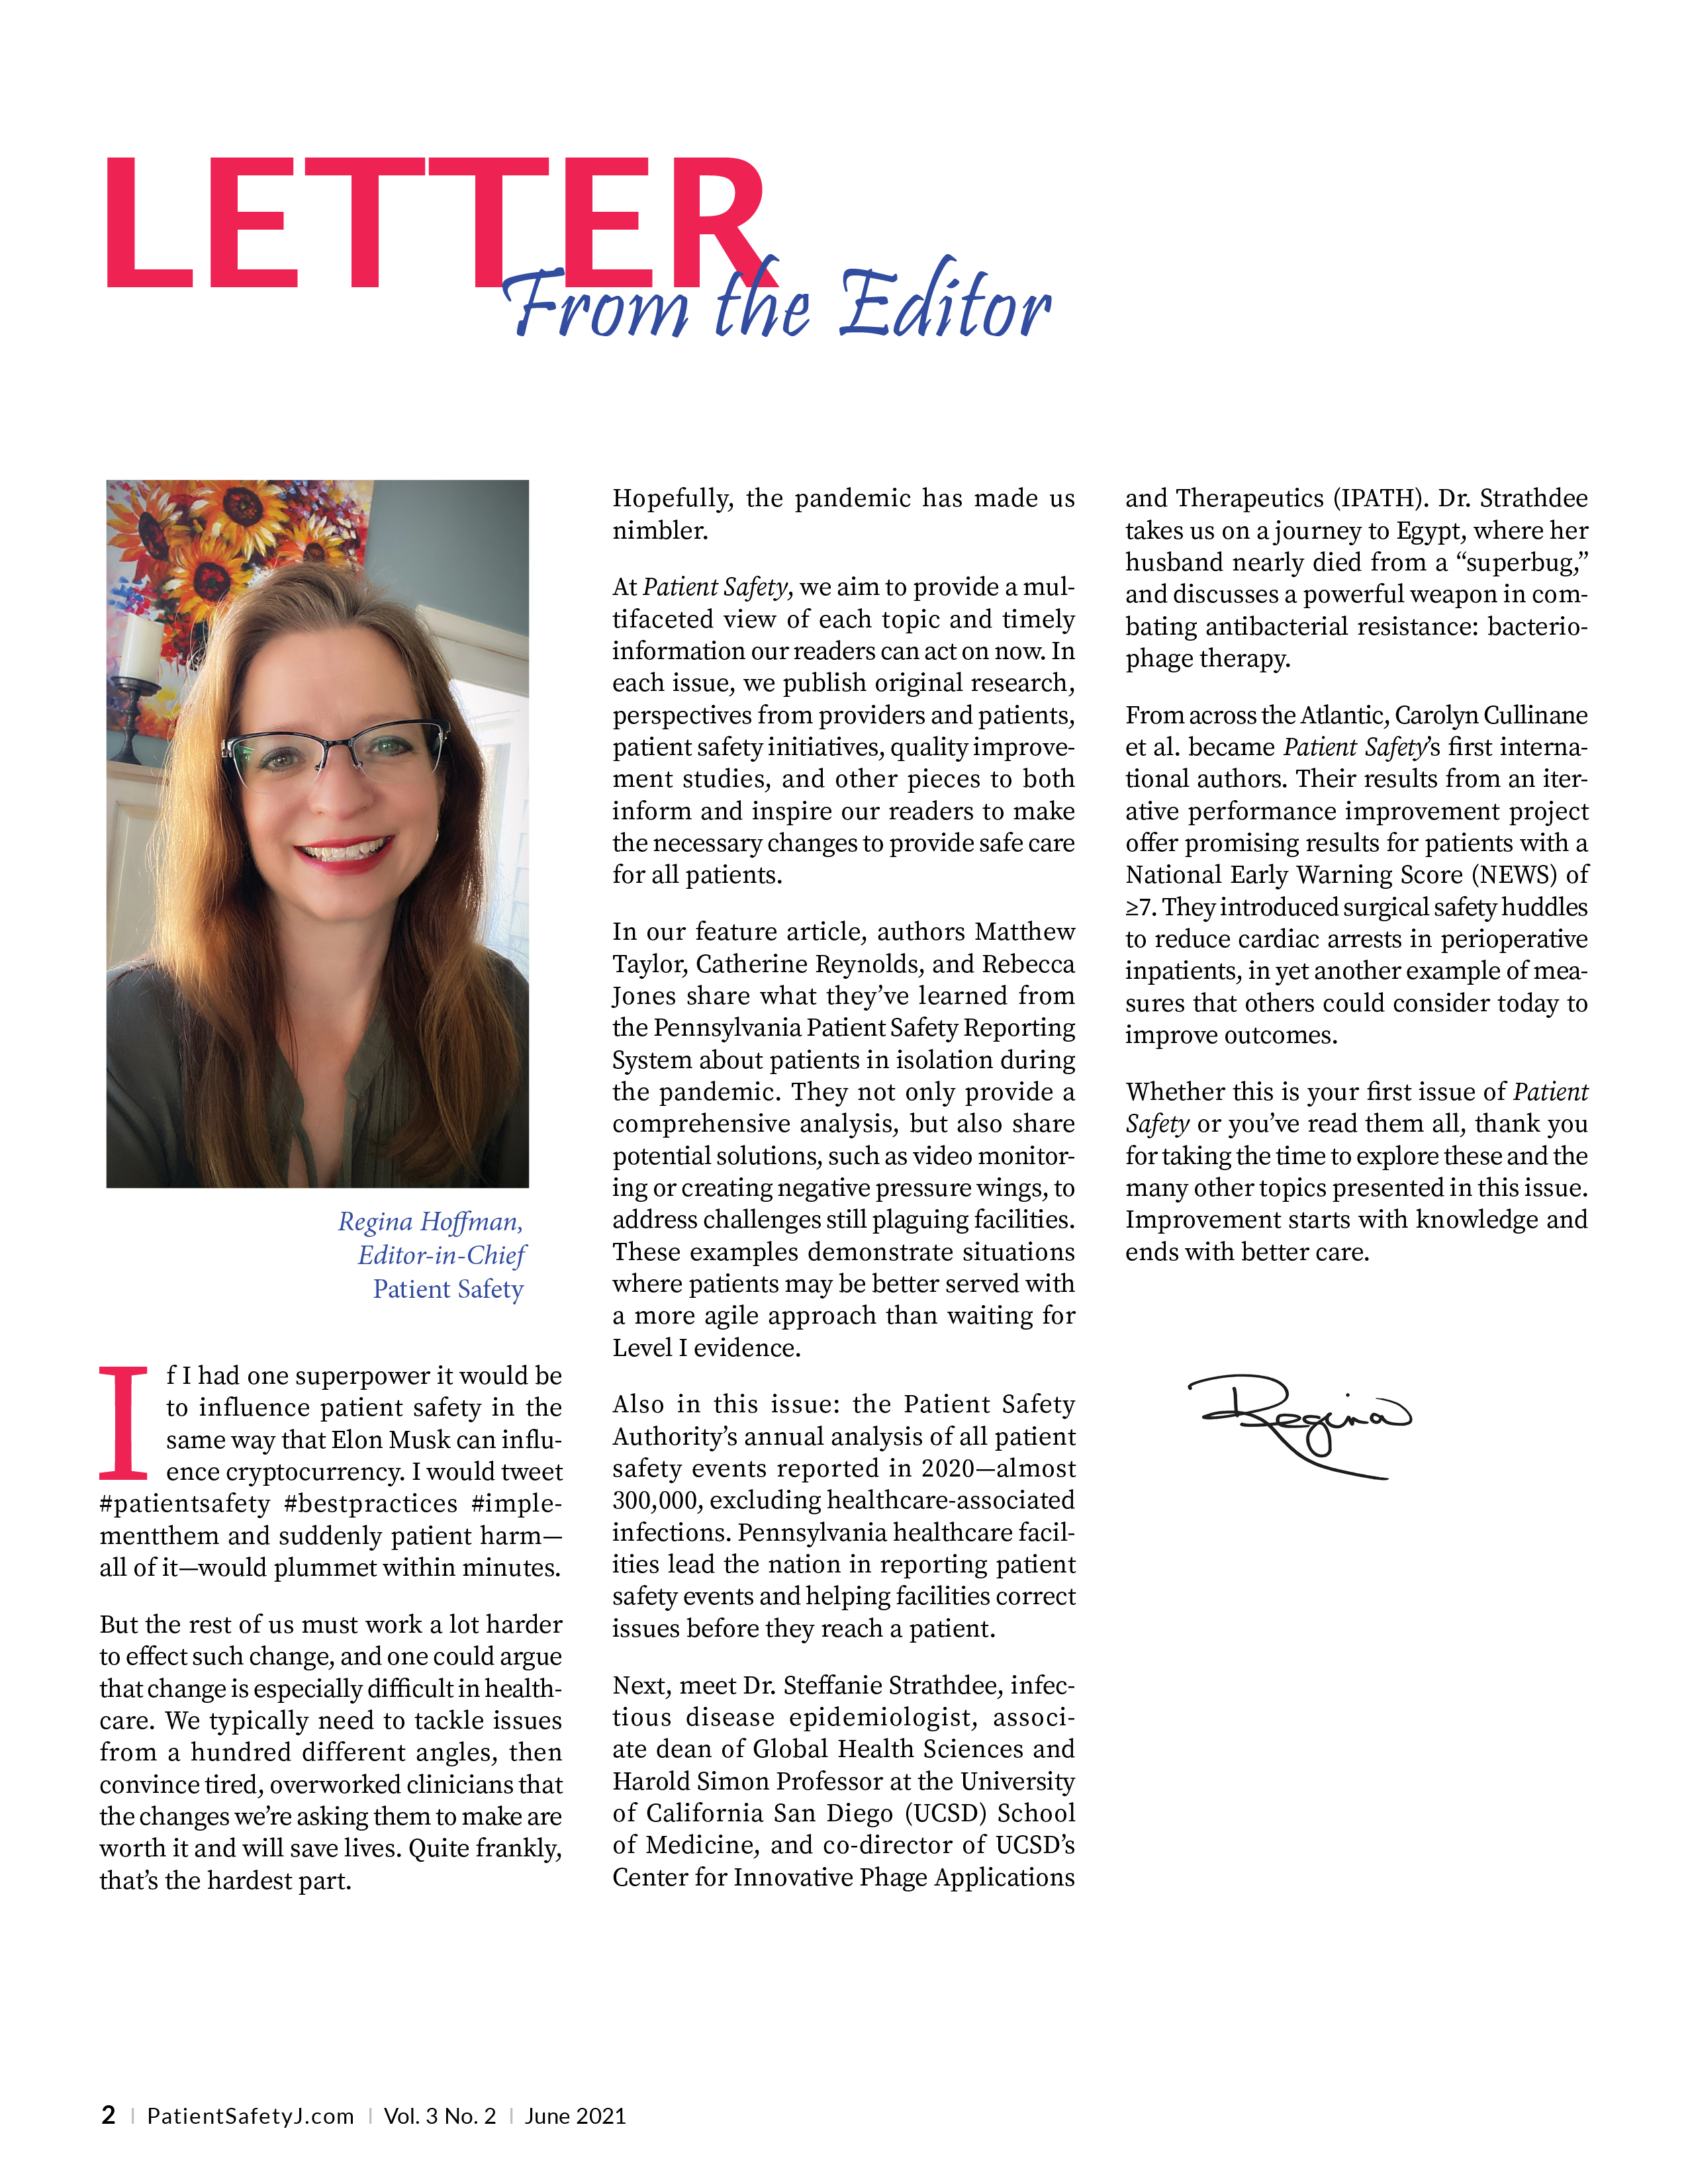 Editor, Regina Hoffman, and her letter to all readers.